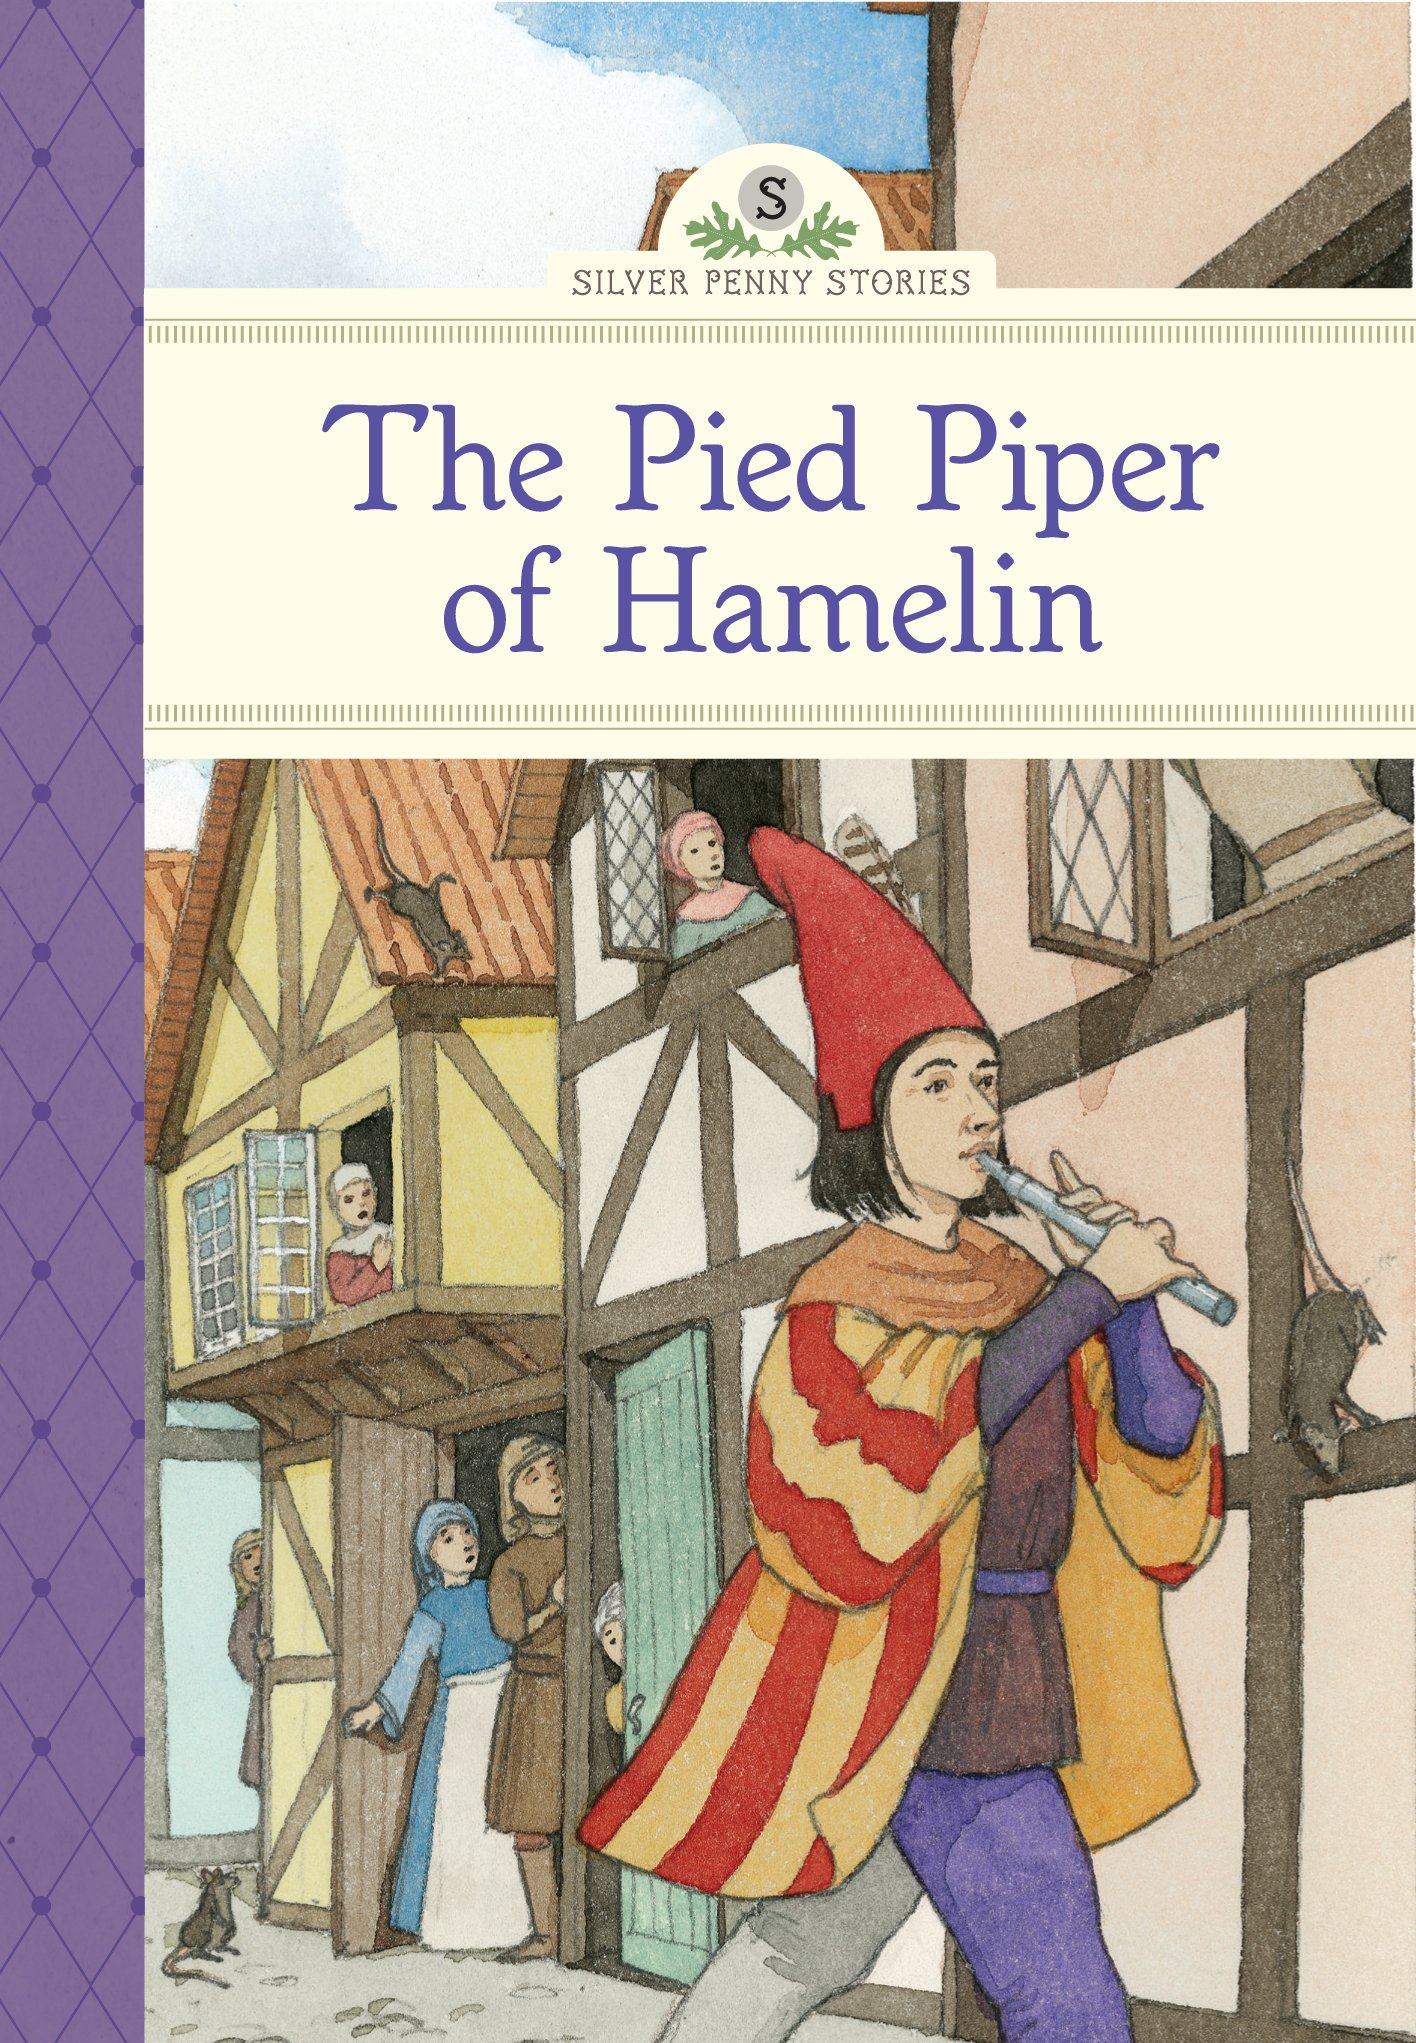 The Pied Piper of Hamelin (Silver Penny Stories) pdf